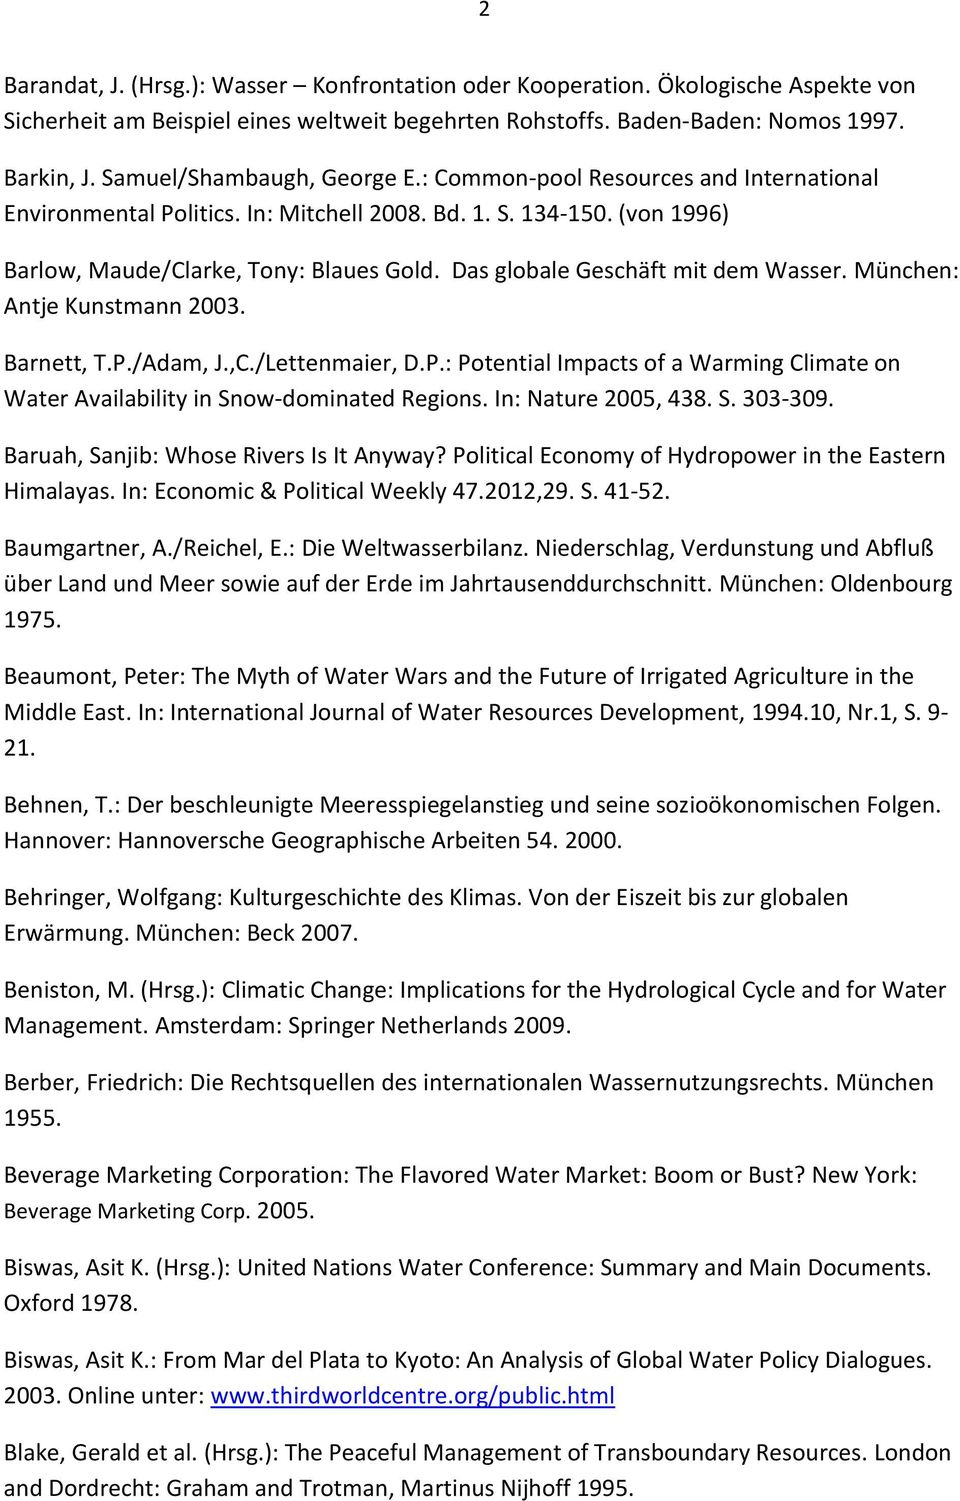 Das globale Geschäft mit dem Wasser. München: Antje Kunstmann 2003. Barnett, T.P./Adam, J.,C./Lettenmaier, D.P.: Potential Impacts of a Warming Climate on Water Availability in Snow-dominated Regions.